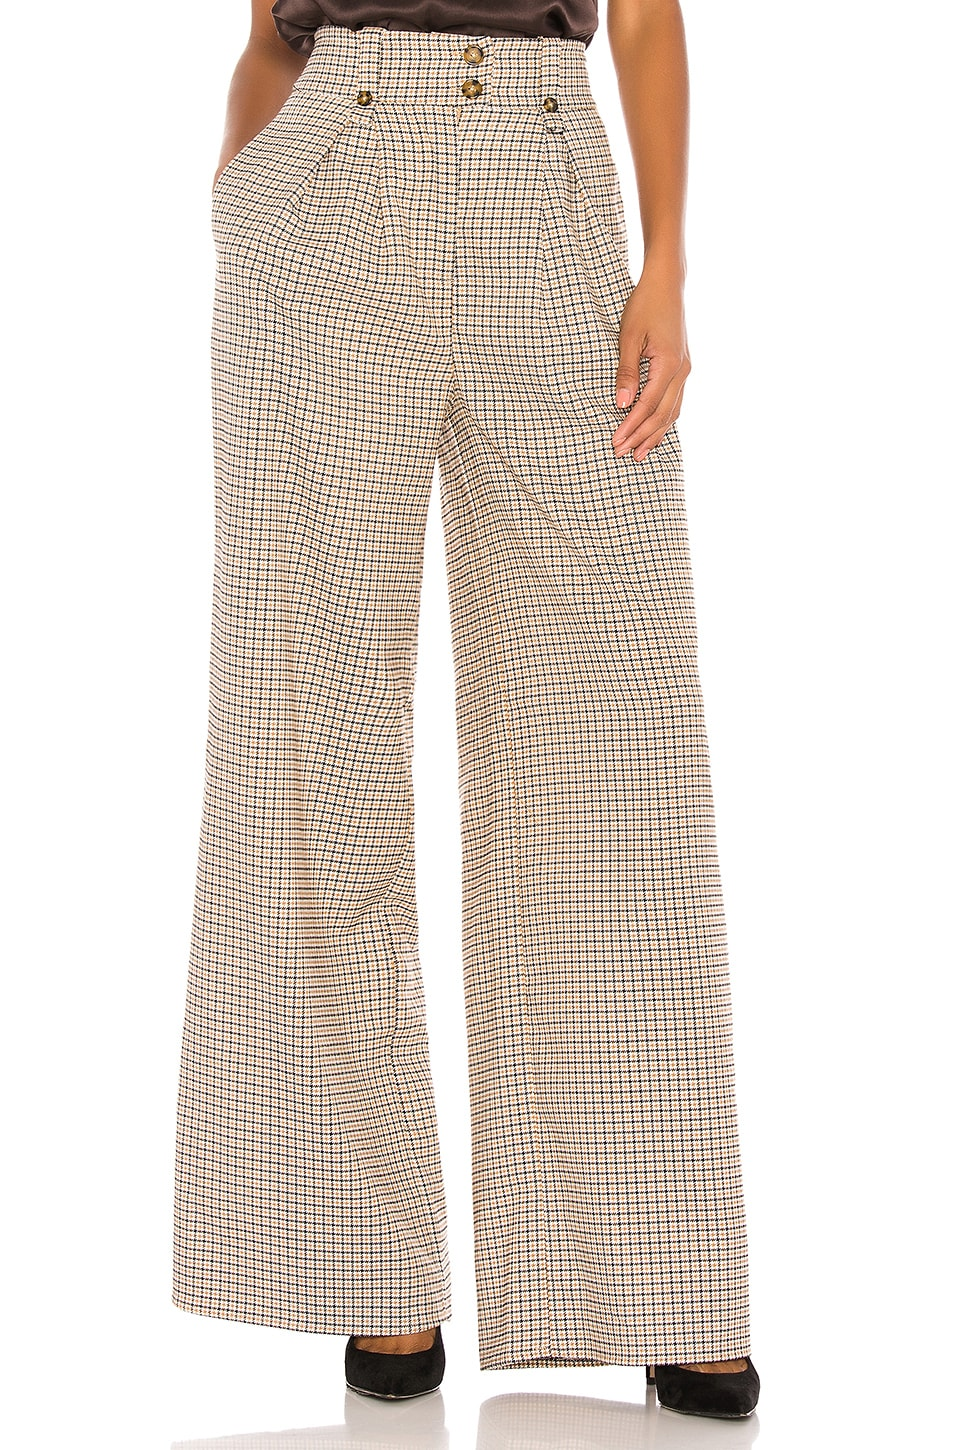 Song of Style Faye Pant in Plaid Multi